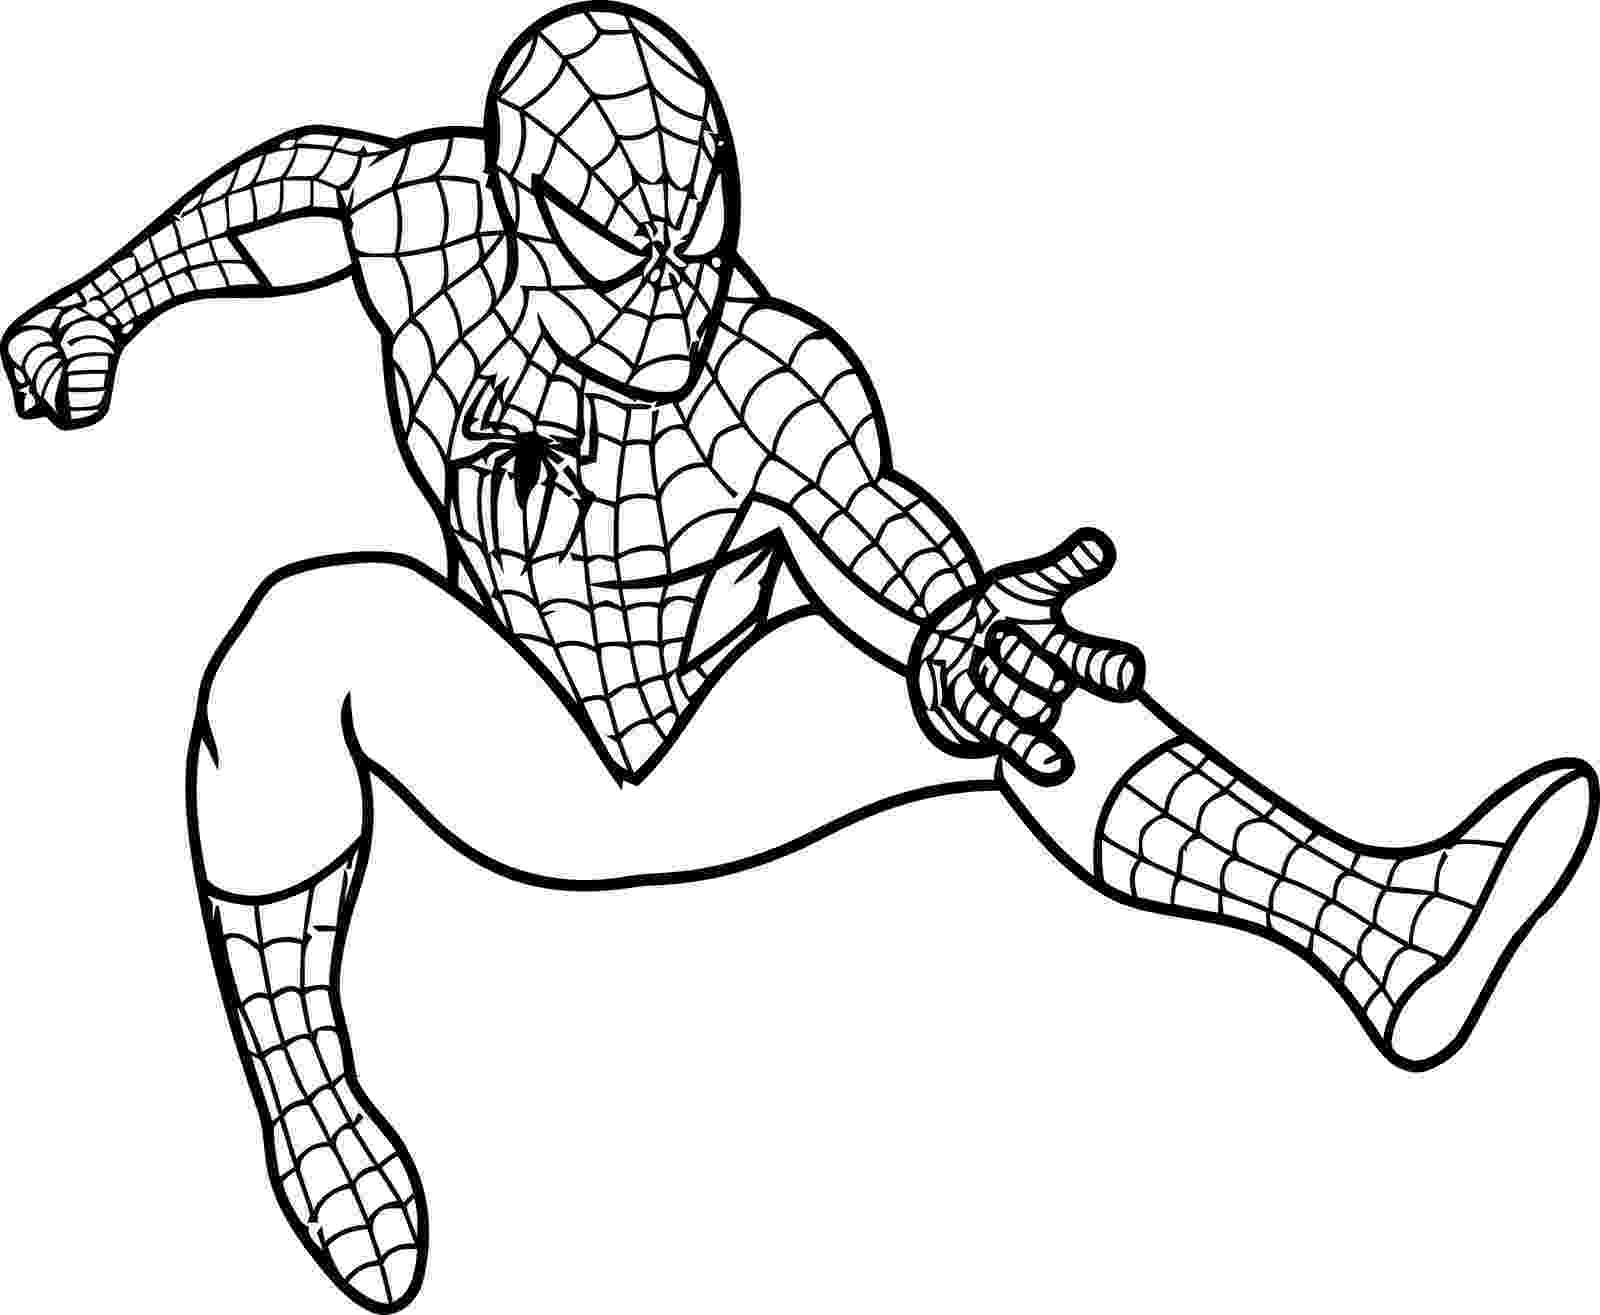 spiderman to color may 2012 team colors color spiderman to